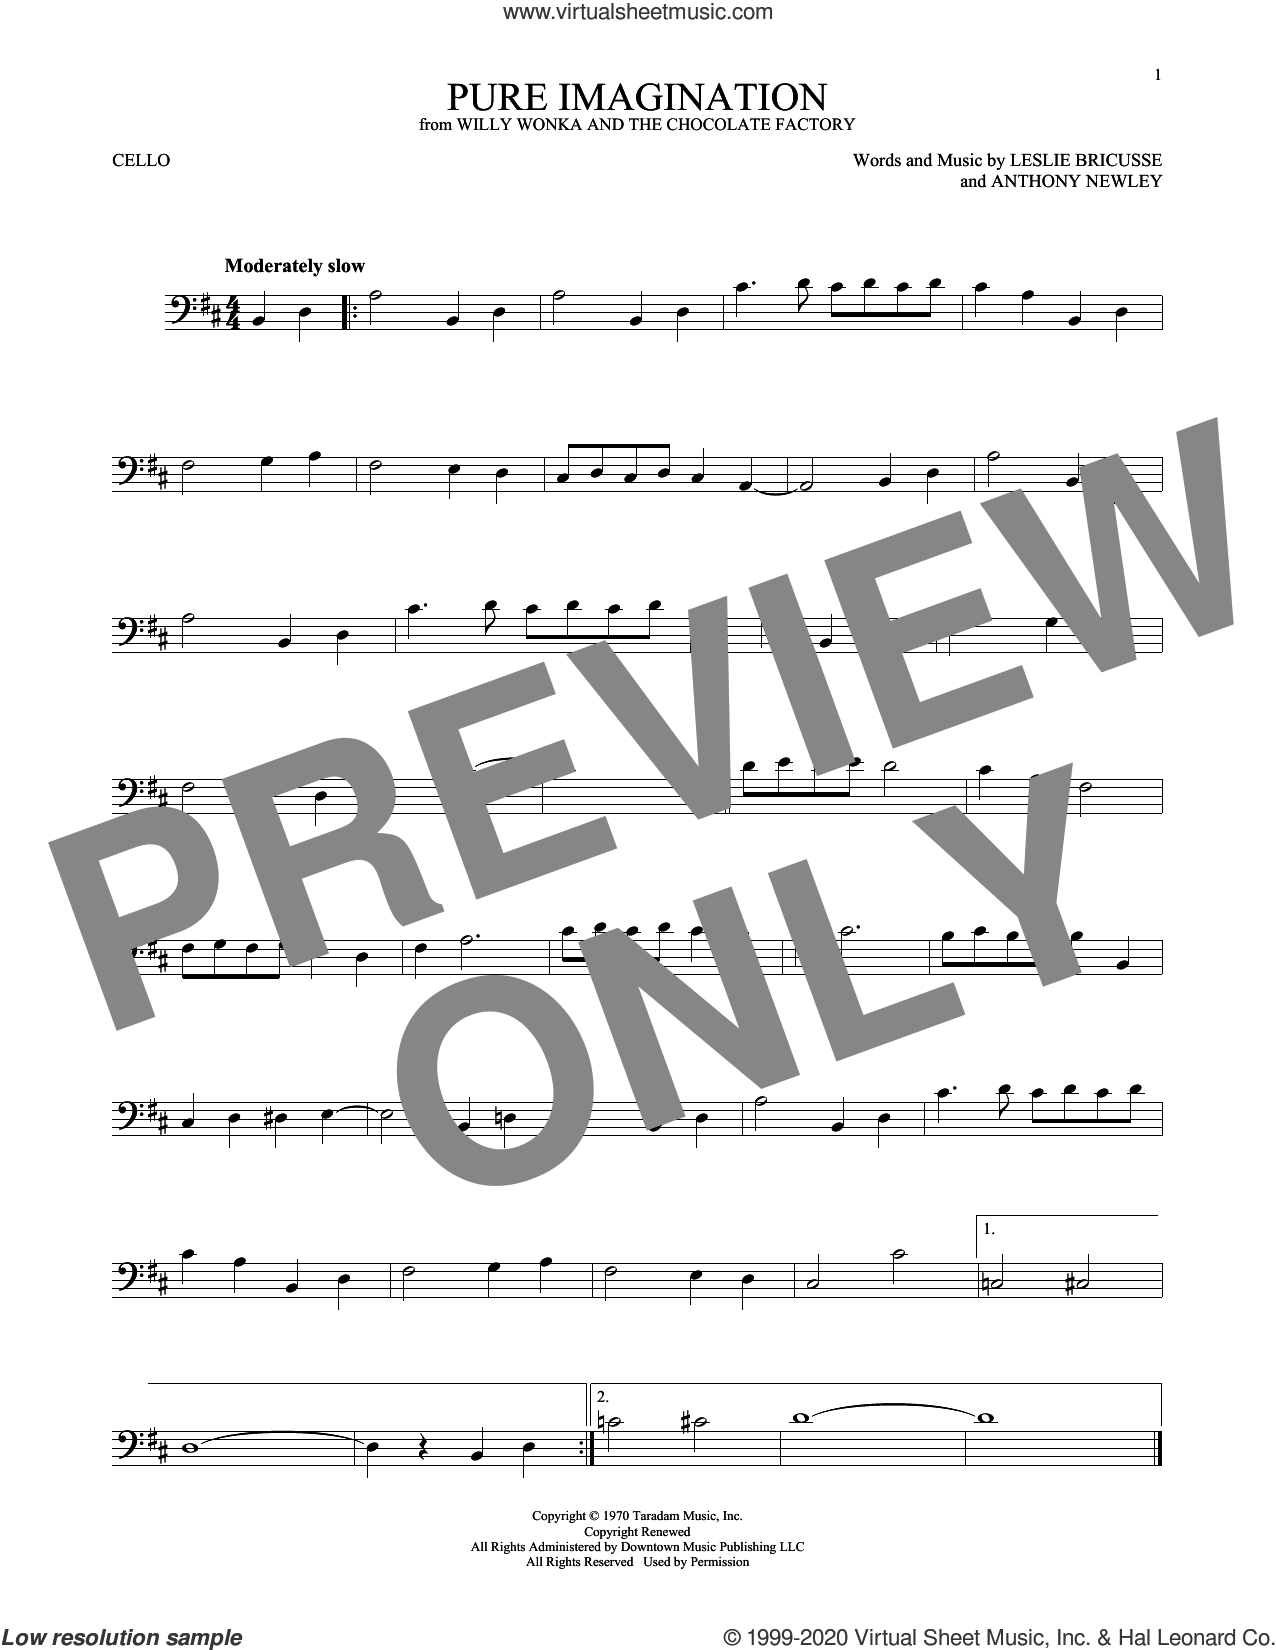 Pure Imagination (from Willy Wonka and The Chocolate Factory) sheet music for cello solo by Leslie Bricusse and Anthony Newley, intermediate skill level